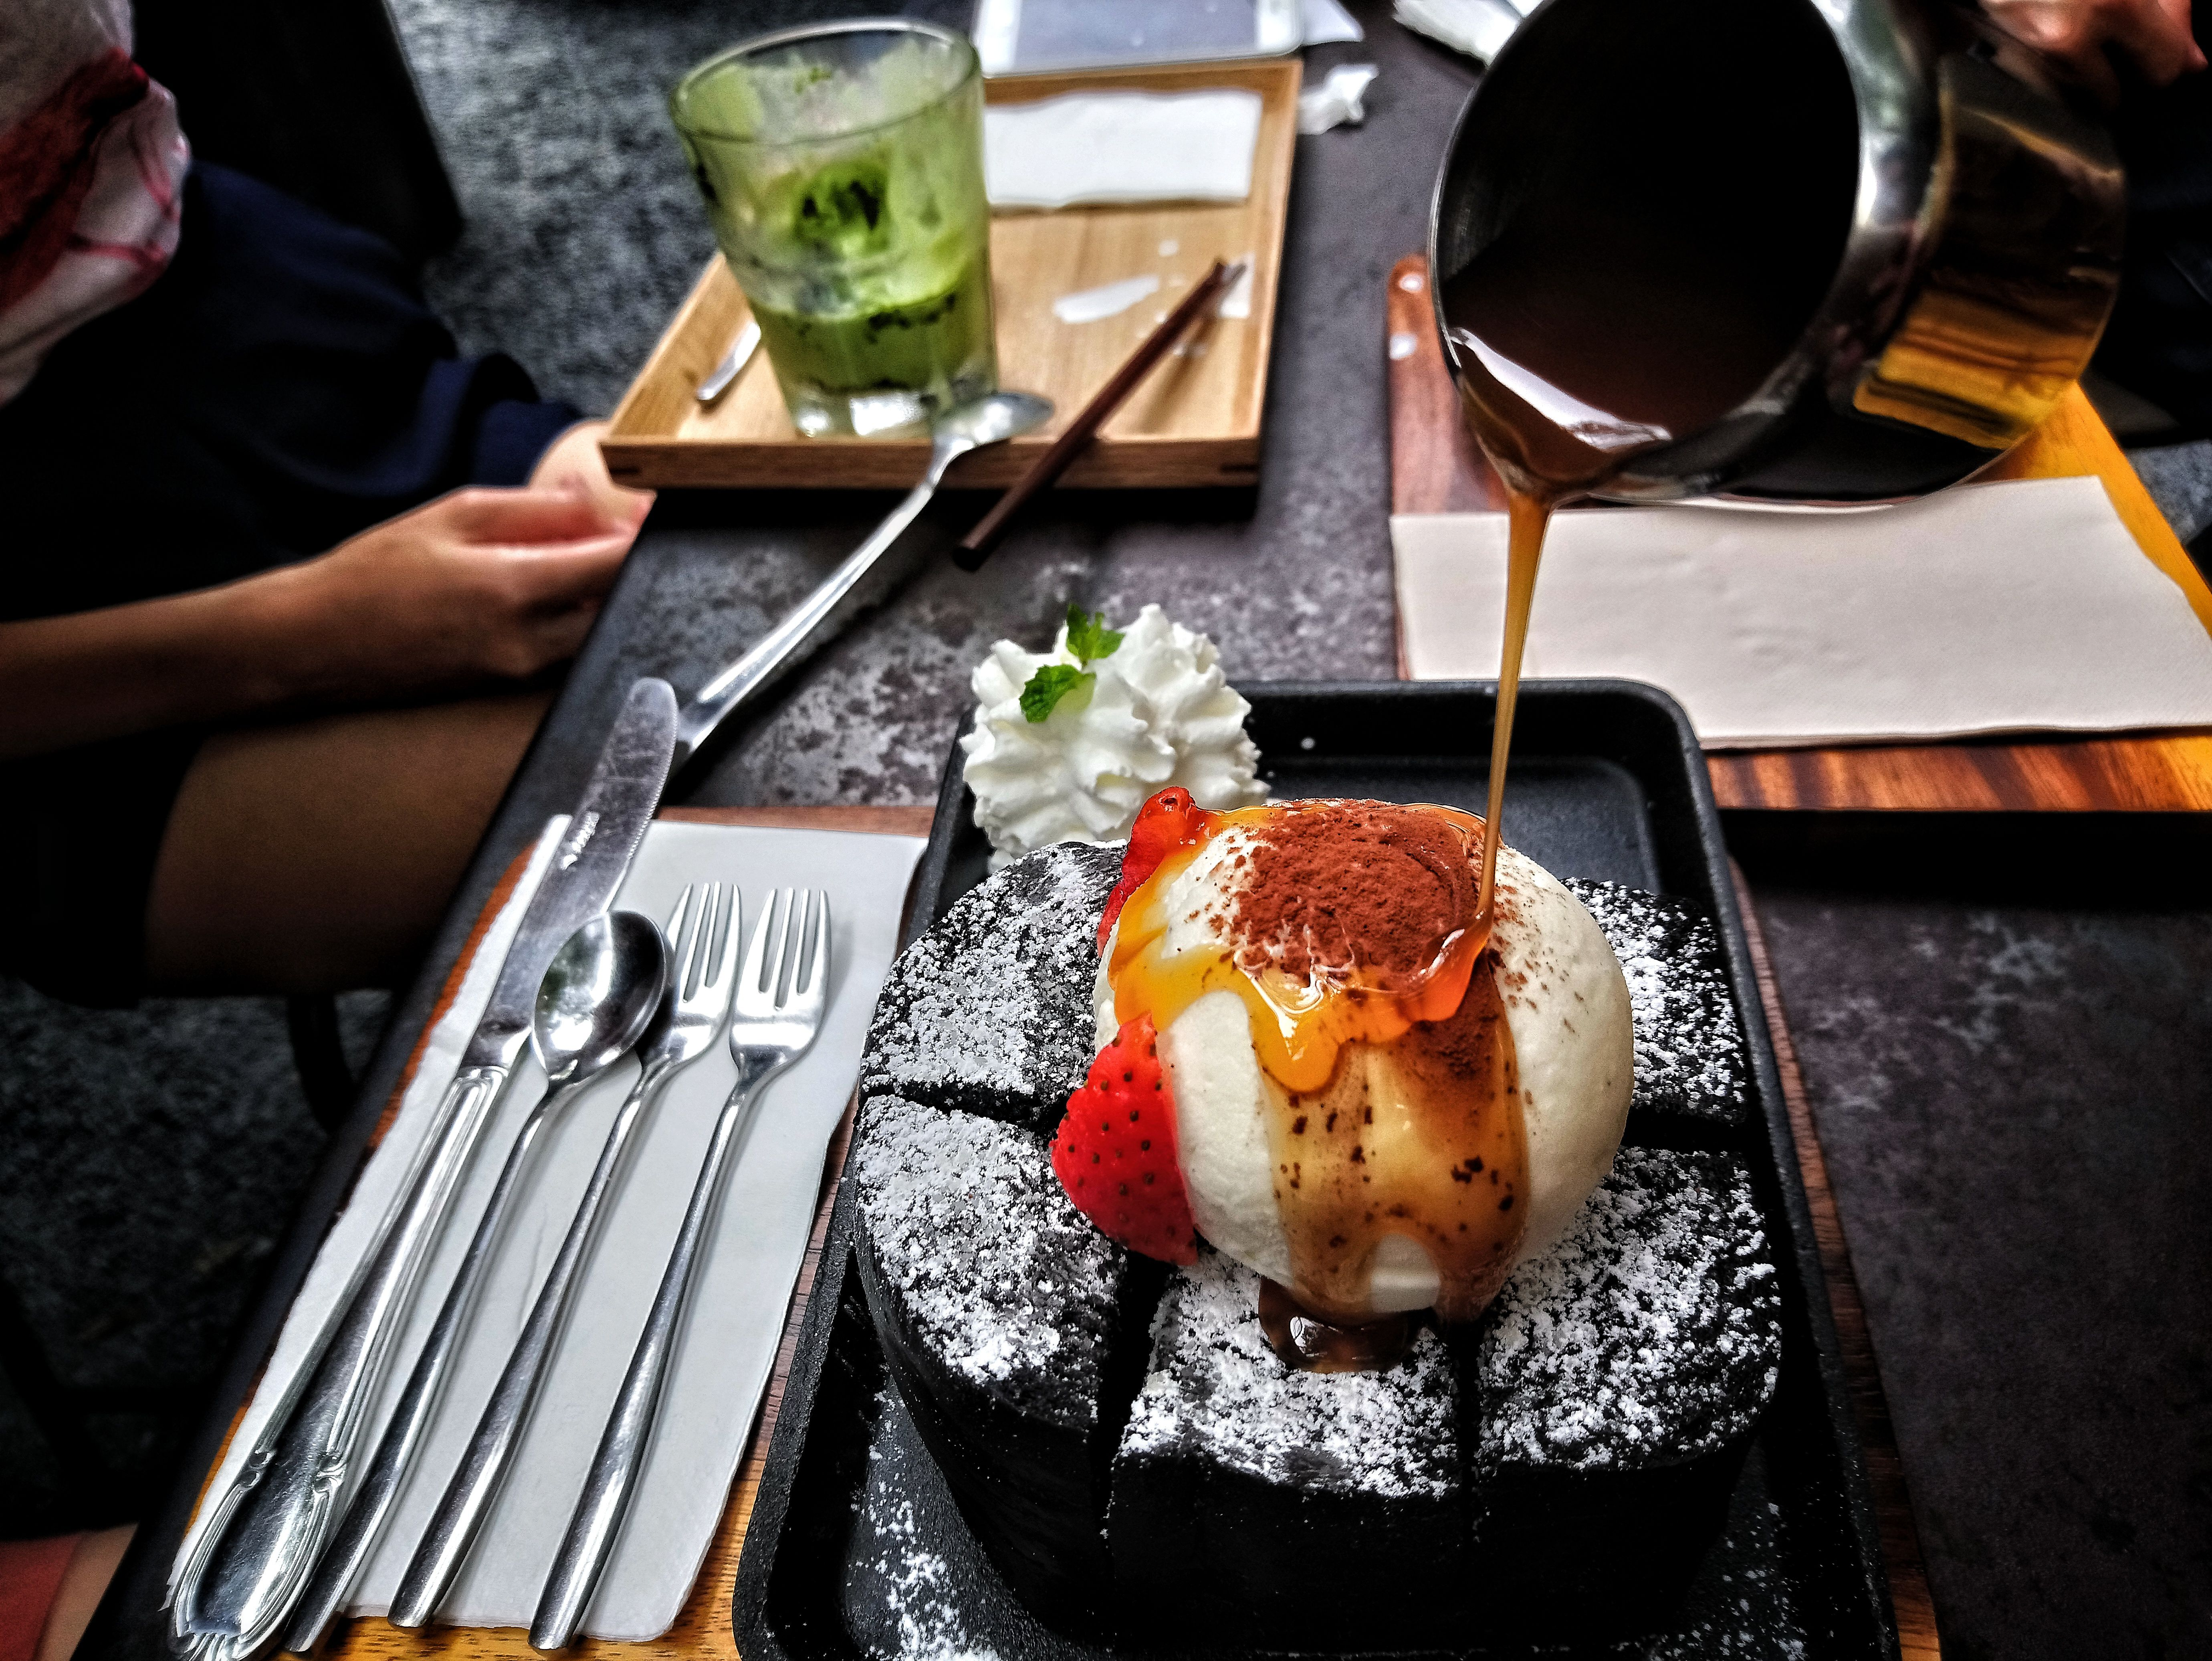 Charcoal honey toast with vanilla icecream and strawberry on top